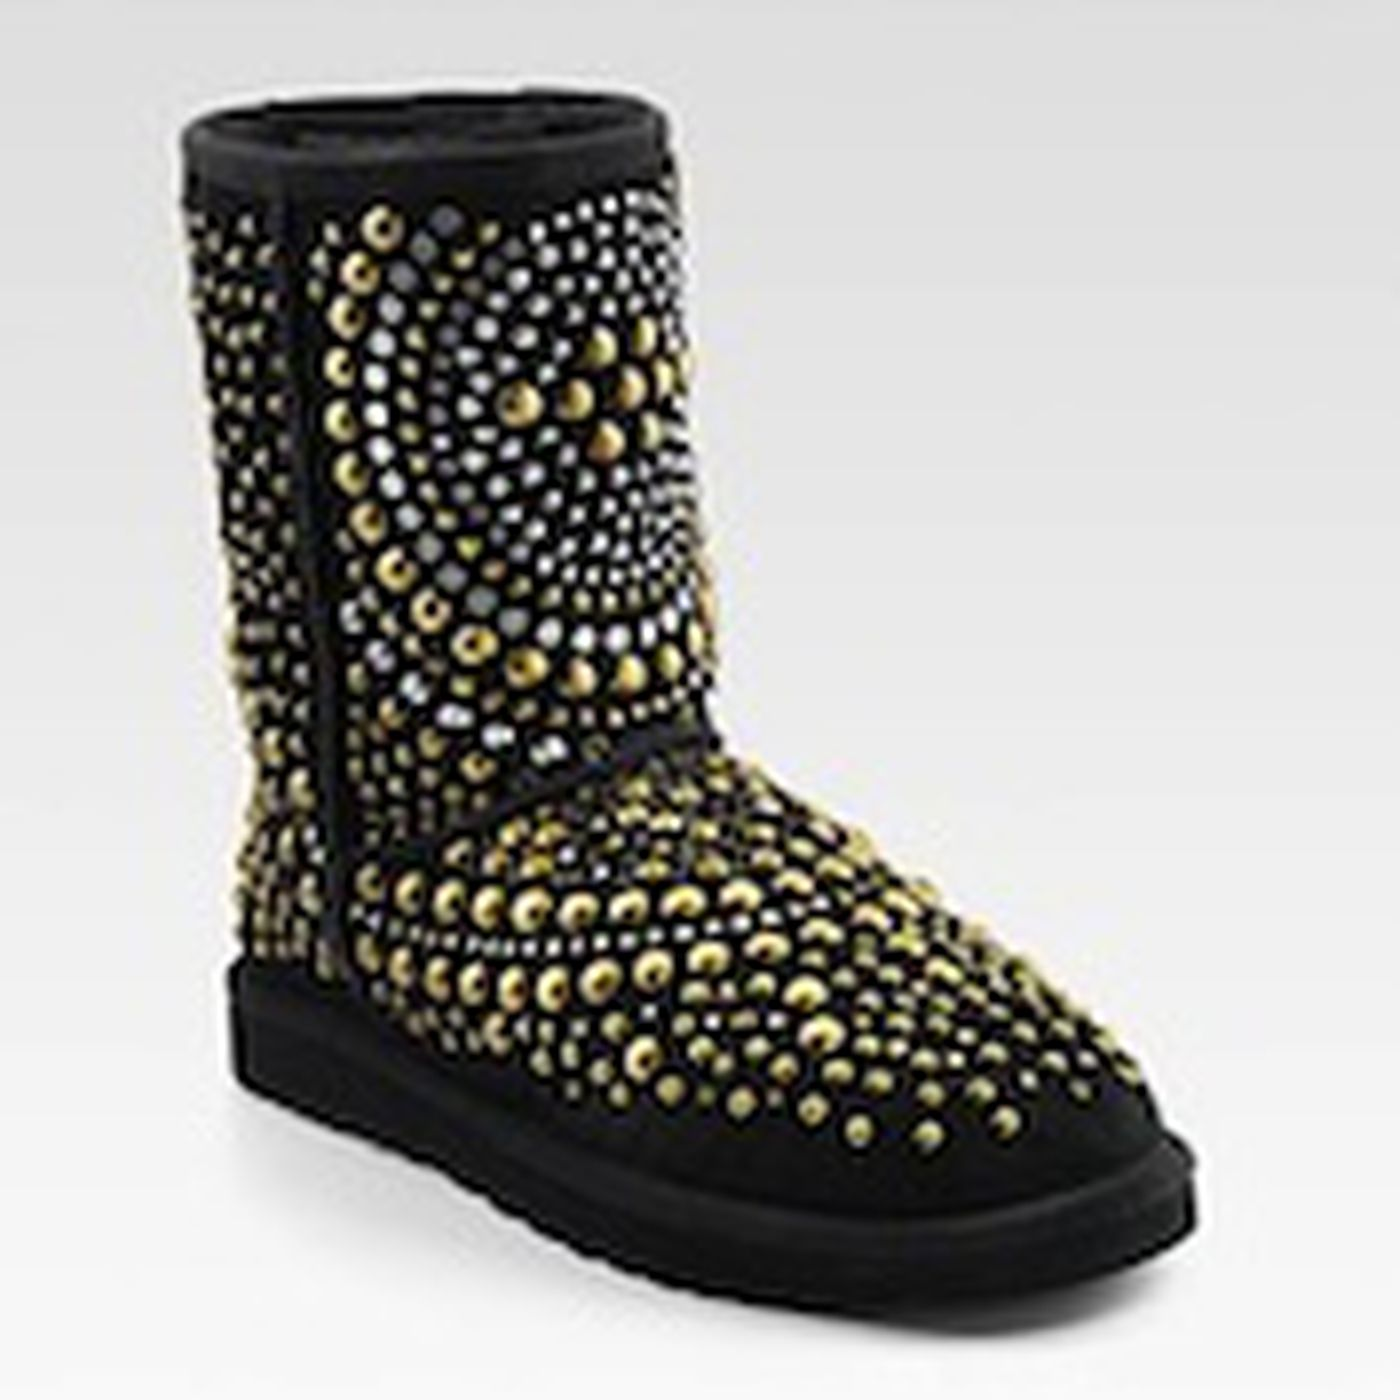 622d73f7ebb4 Poll  Jimmy Choo s Uggs Arrive at Saks. Which Style is the Worst ...